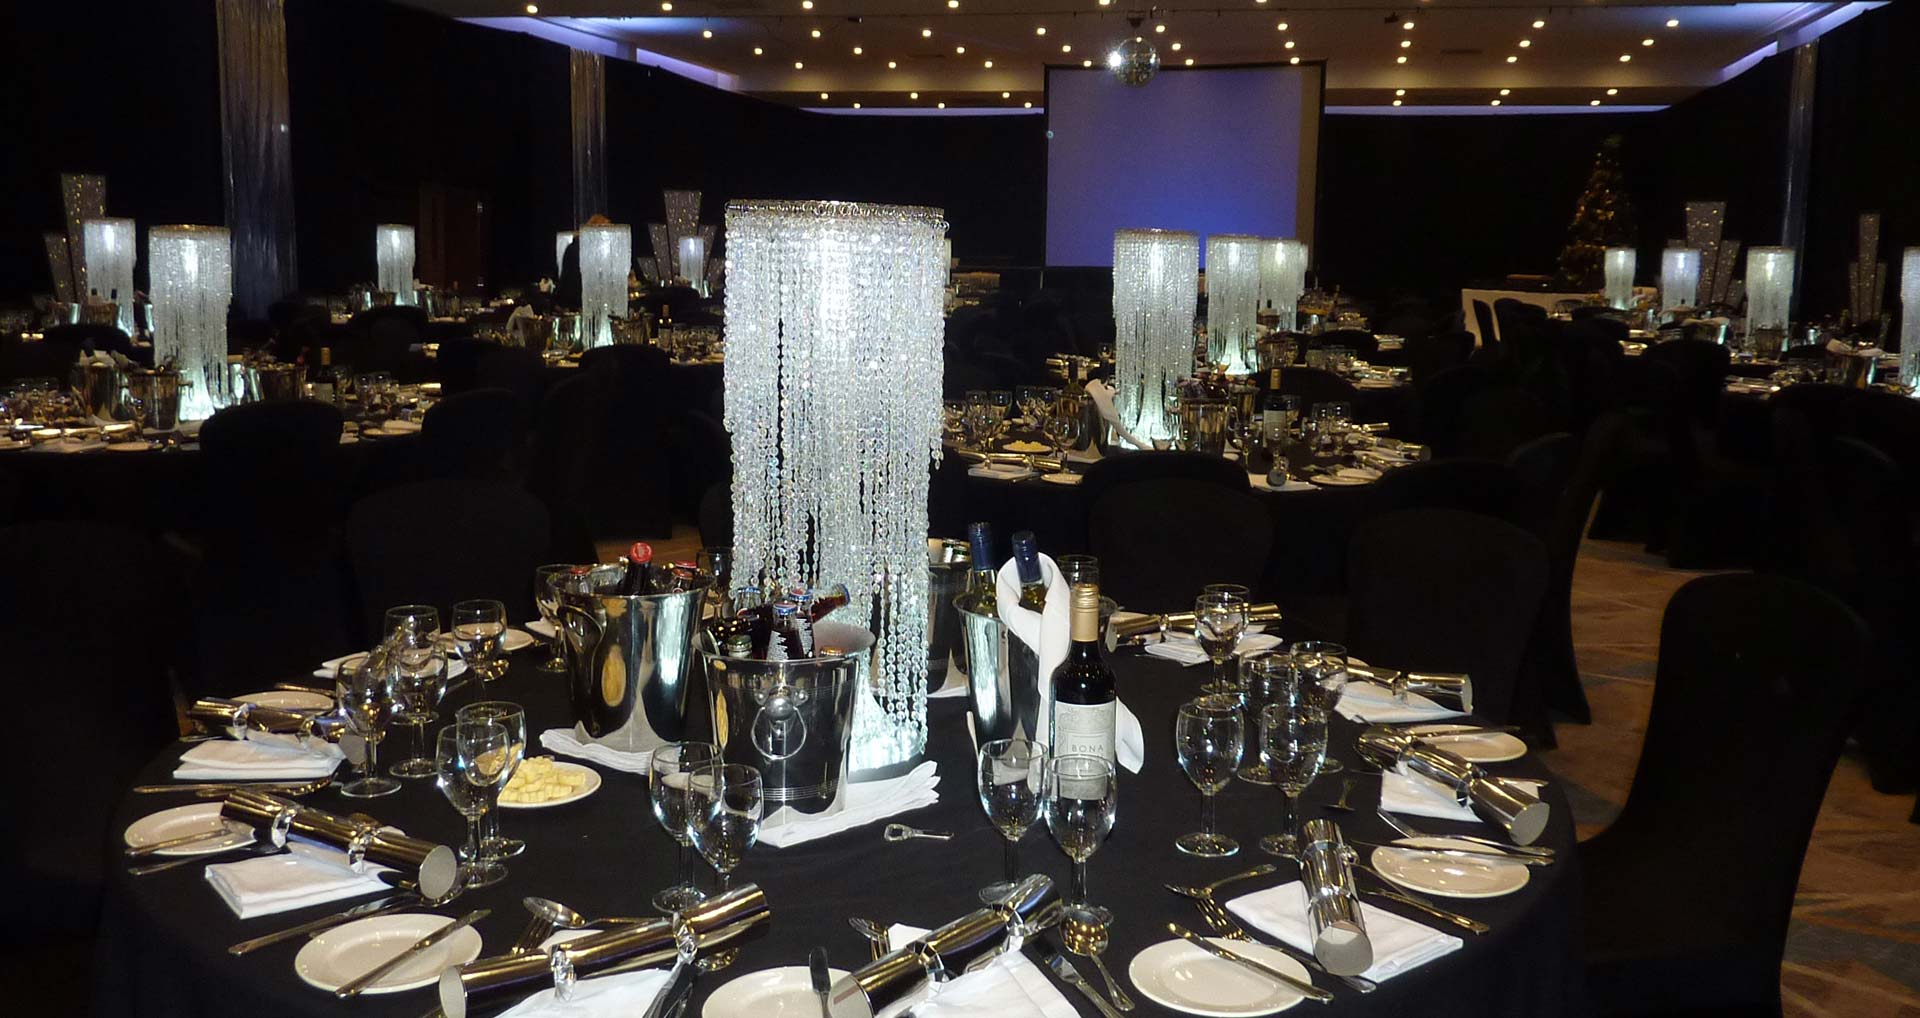 LED lighting included with most centrepieces